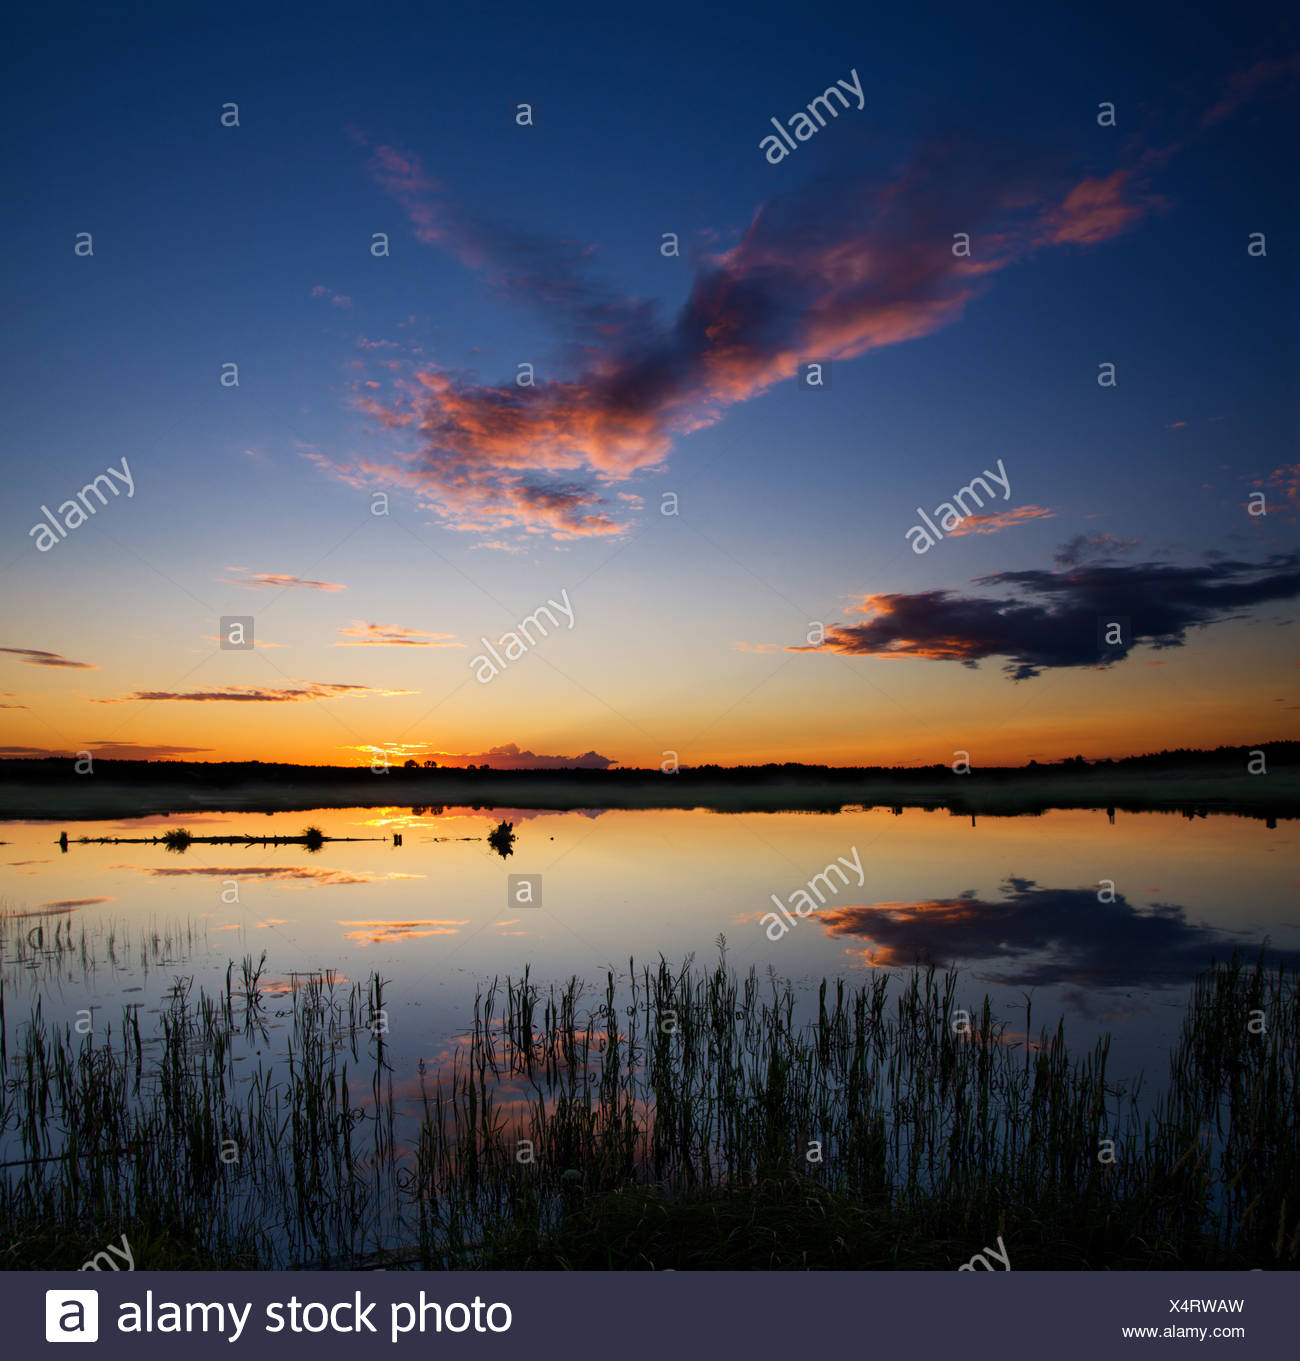 sunset over lake - Stock Image